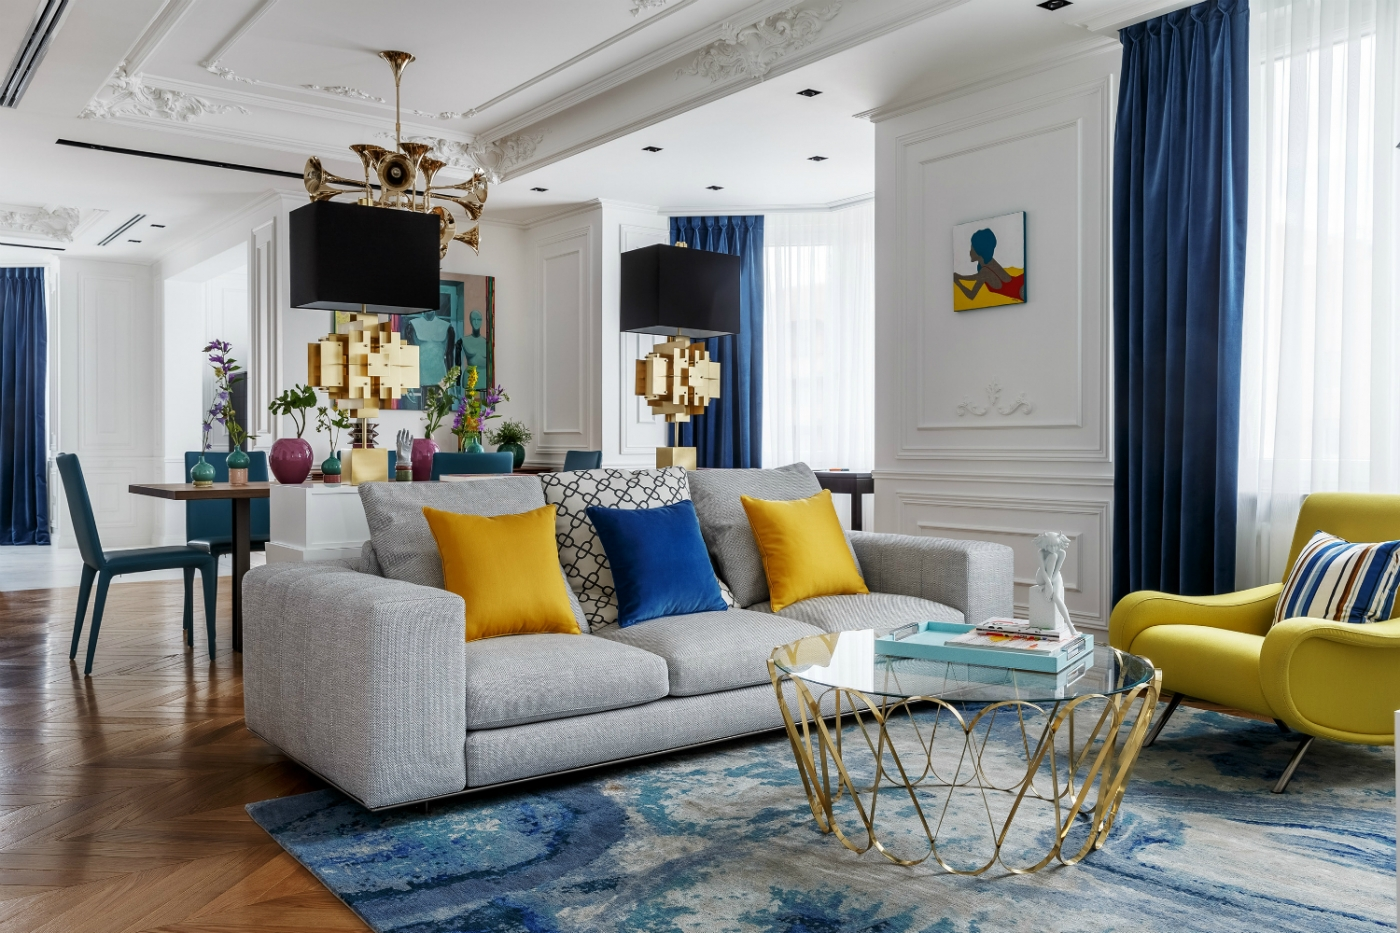 interior design projects Spark your Inspiration With These Interior Design Projects feature 3 1400x933